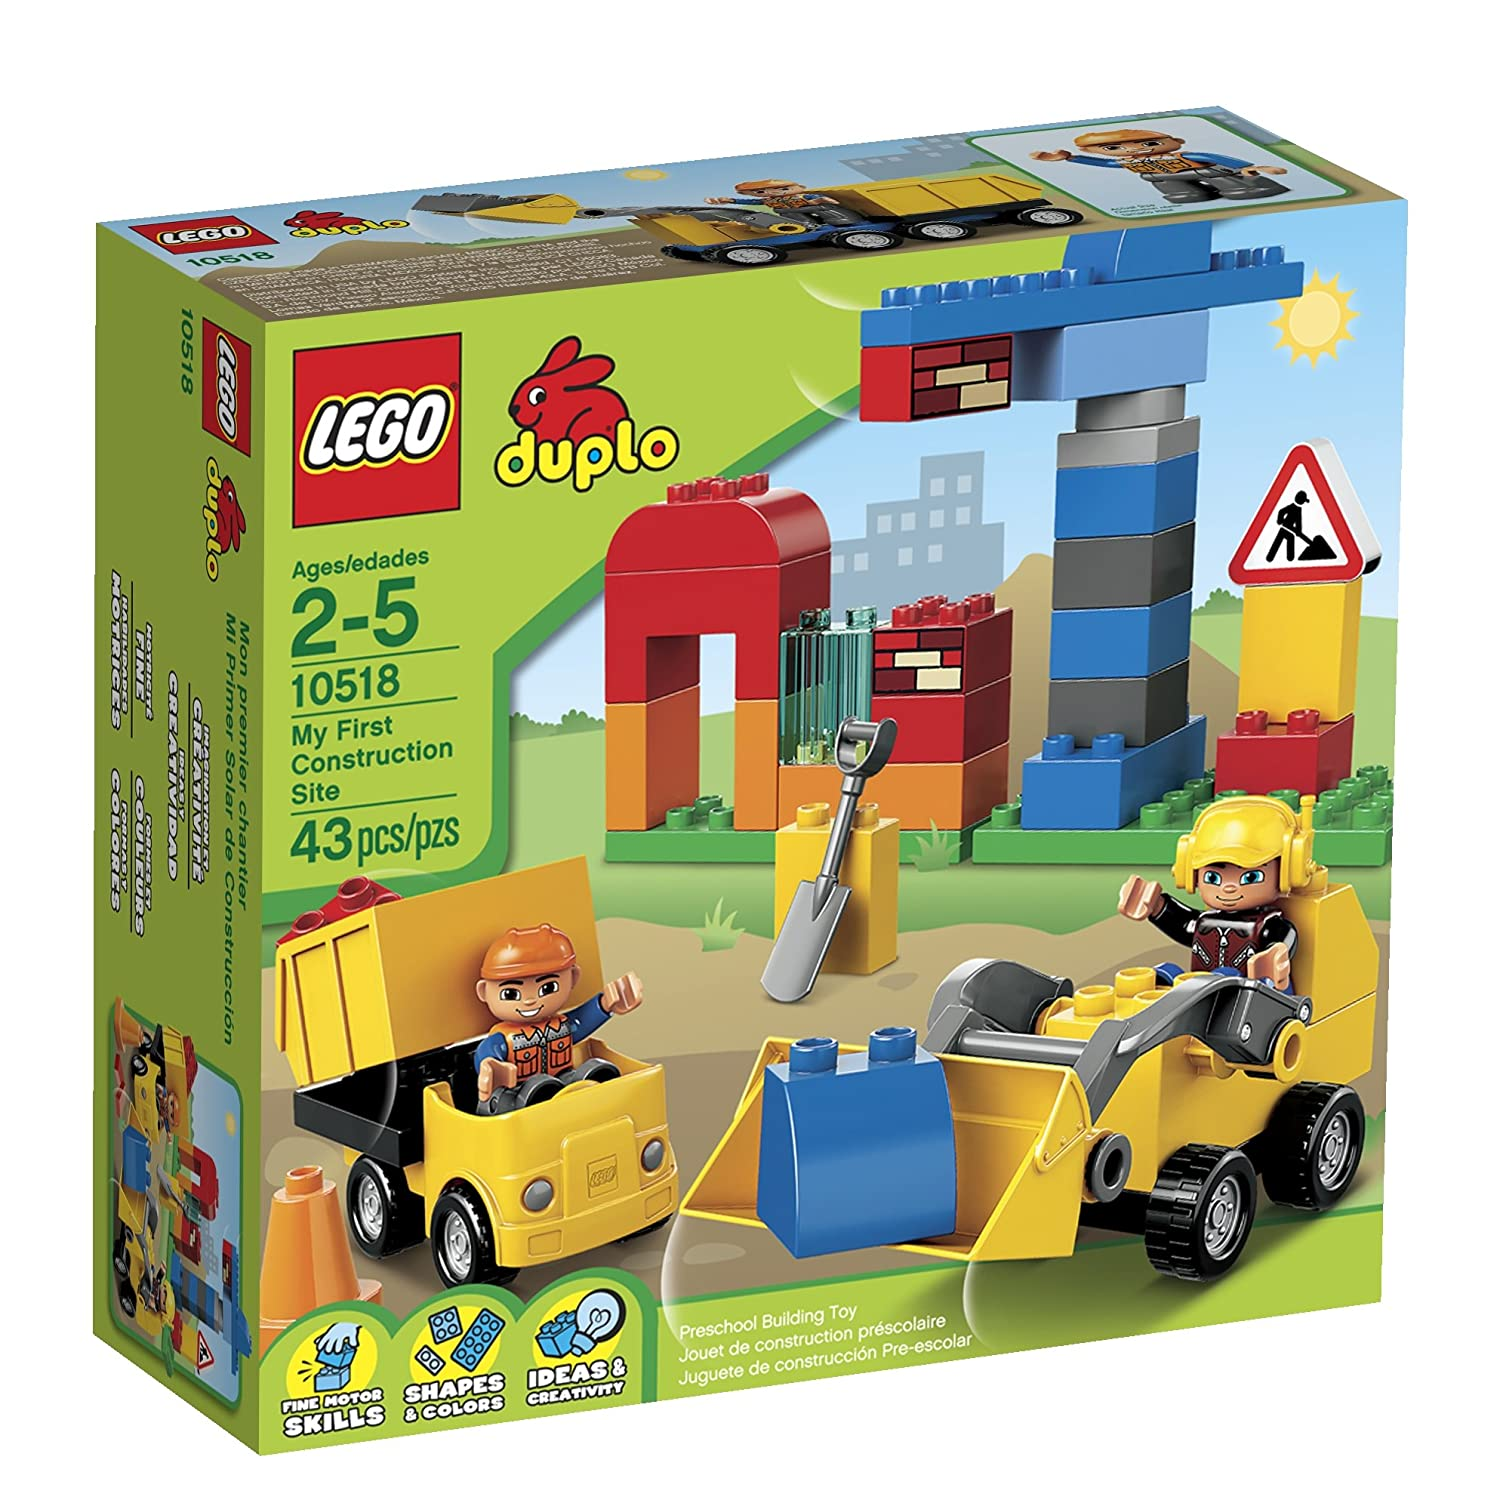 Construction Site Toys For Boys : Best gifts for year old boys in itsy bitsy fun